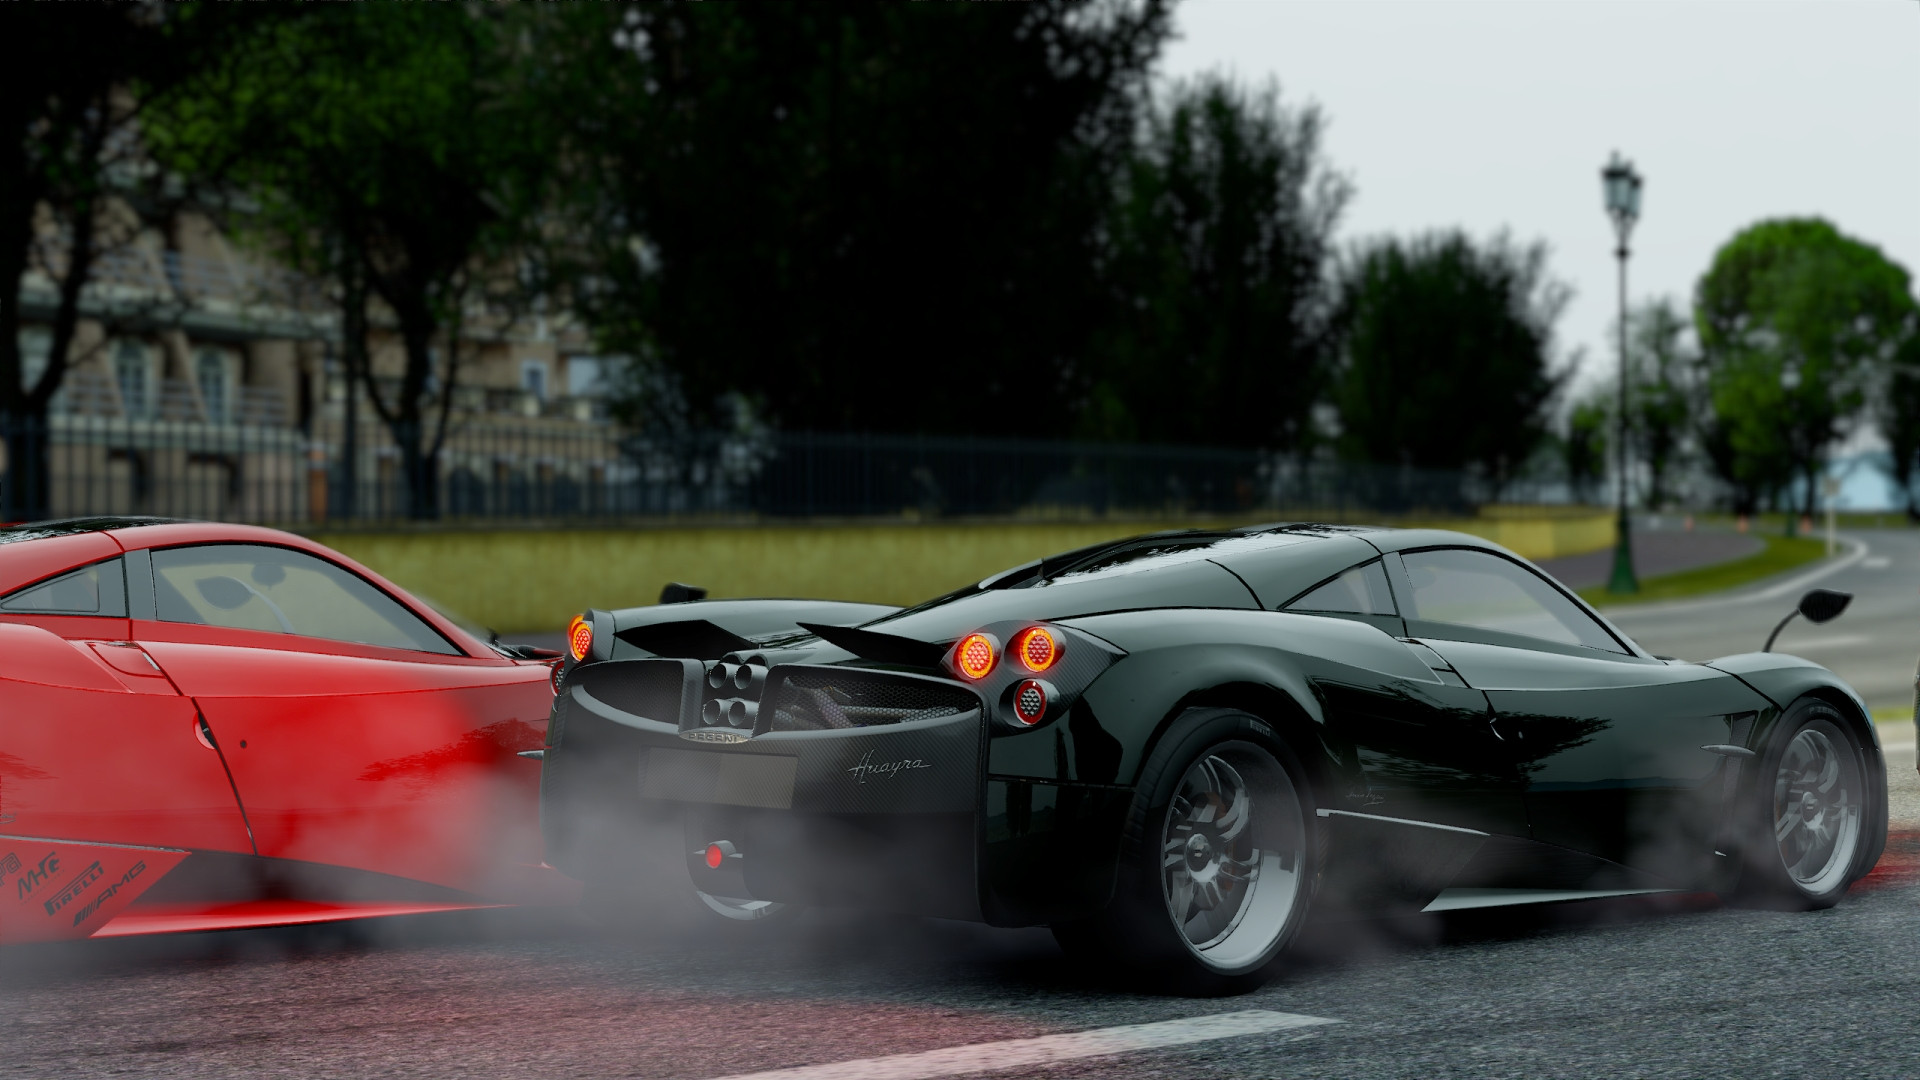 Project Cars Wallpaper Red New Project C A R S Screenshots Are Stunning Truly Shows